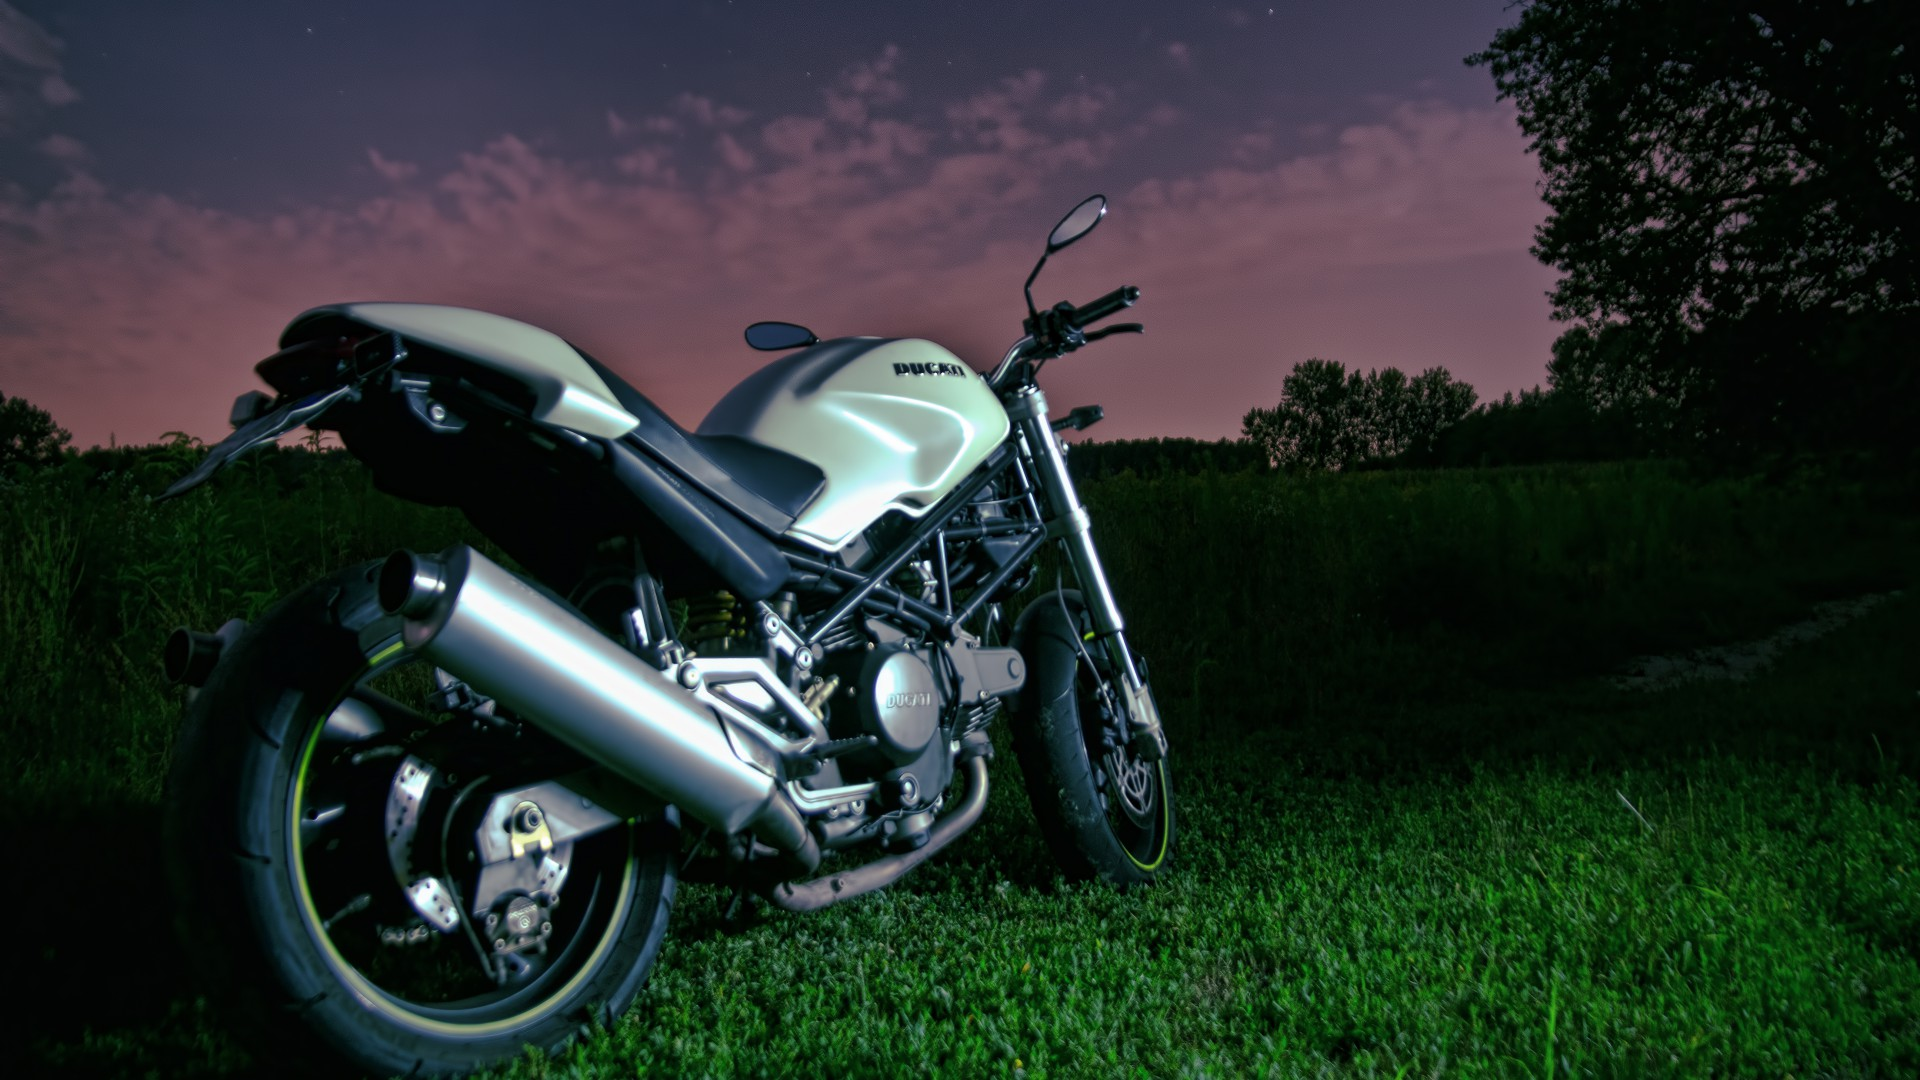 Дукати Монстр, 796, спортбайк, скорость, обзор, ночное небо, Ducati Monster 796, night sky, motorcycle, racing, bike, sport bike, review, test drive, buy, rent (horizontal)